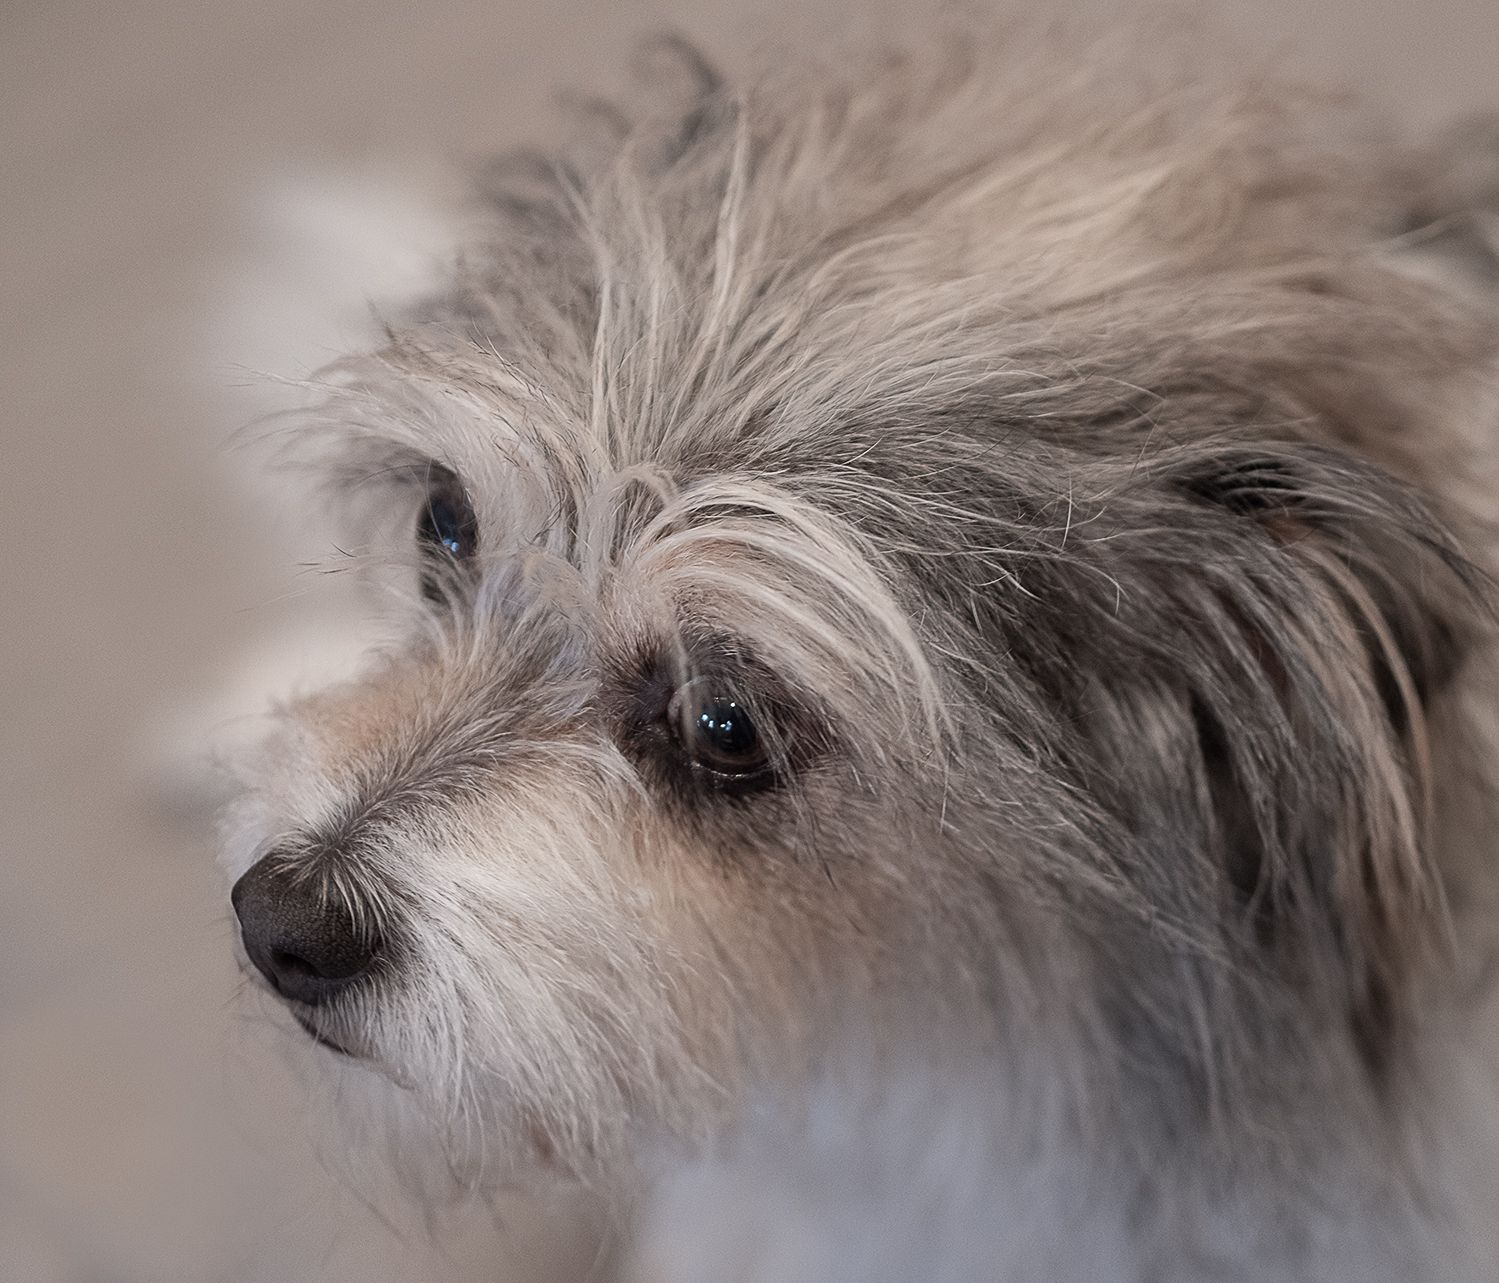 Headshot of Grey and White Terrier Dog Rescue by Zurich based Photographer L Argote